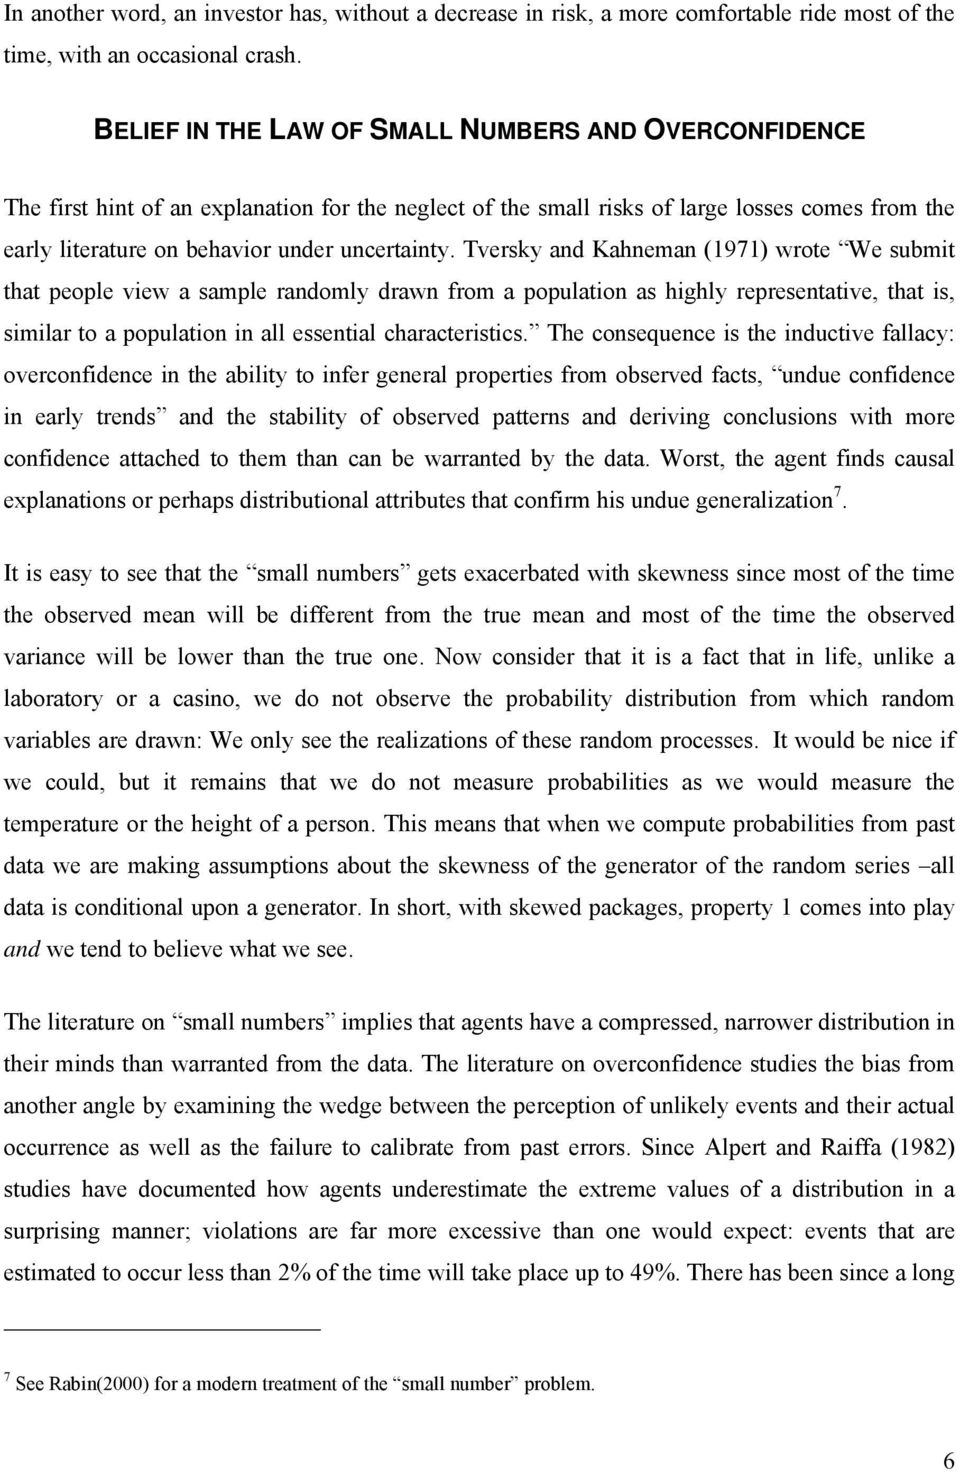 Tversky and Kahneman (1971) wrote We submit that people view a sample randomly drawn from a population as highly representative, that is, similar to a population in all essential characteristics.